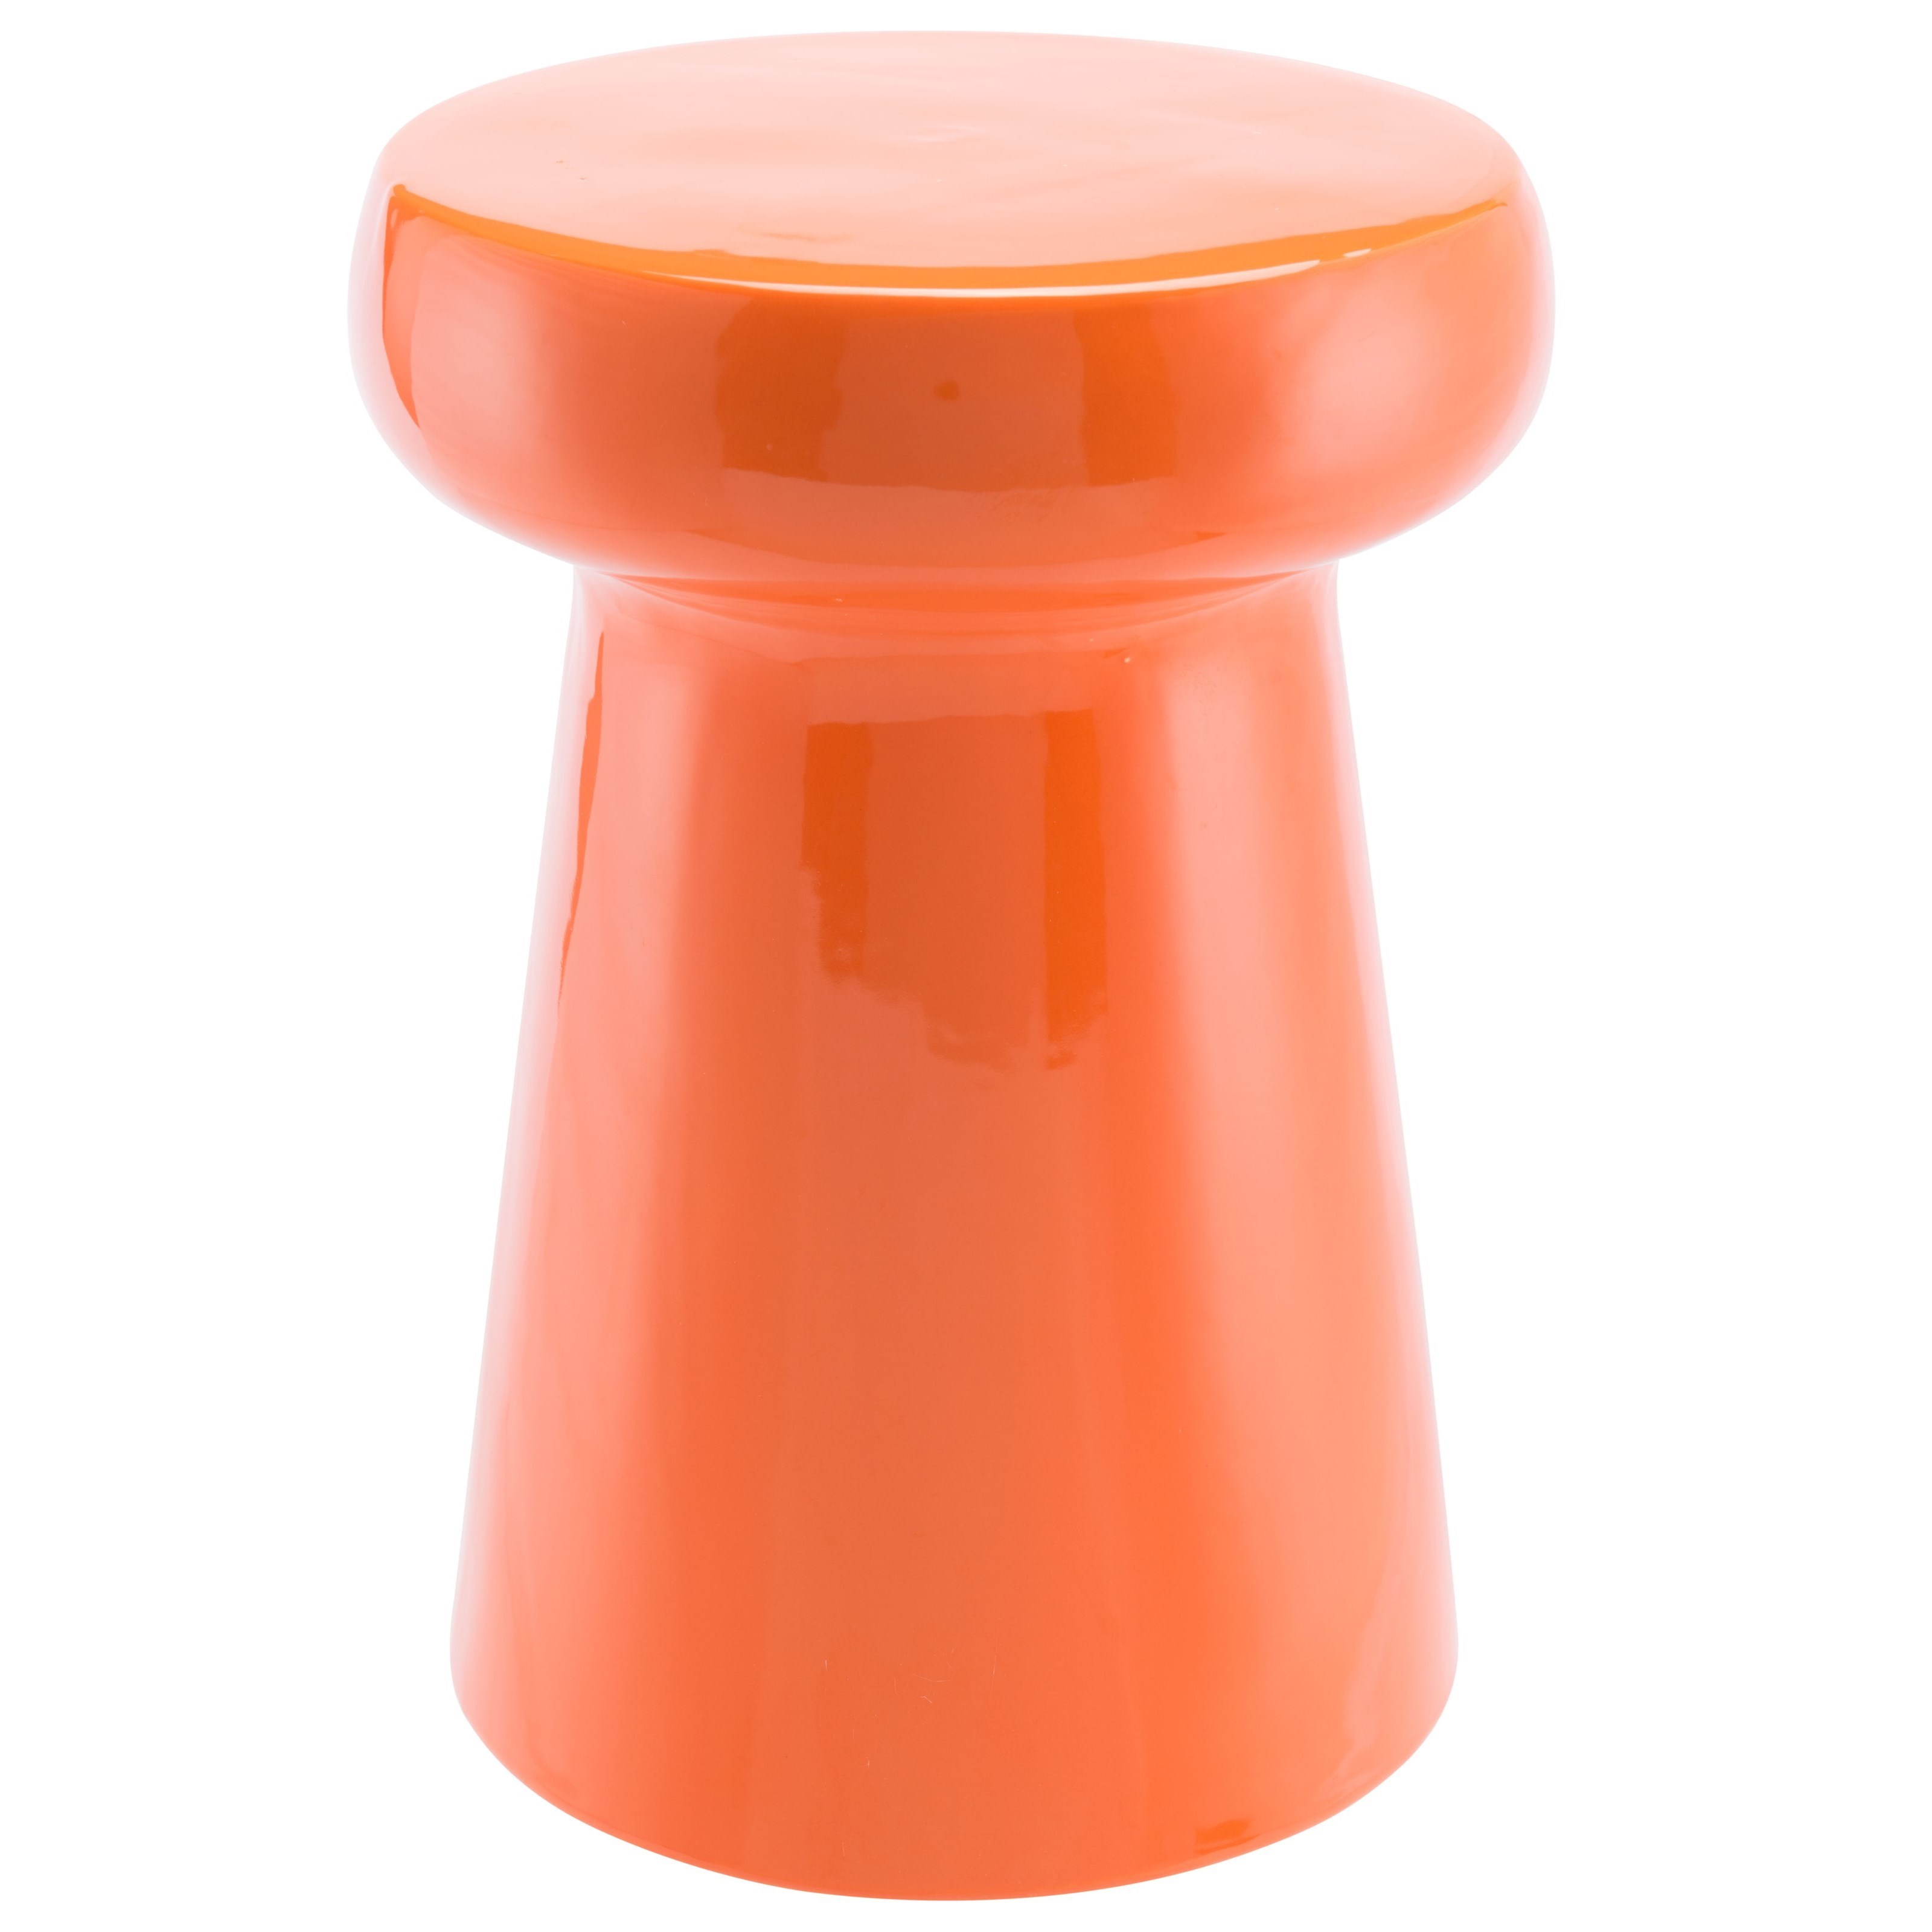 Zuo Accent Tables Orange Garden Seat - Item Number: A11090